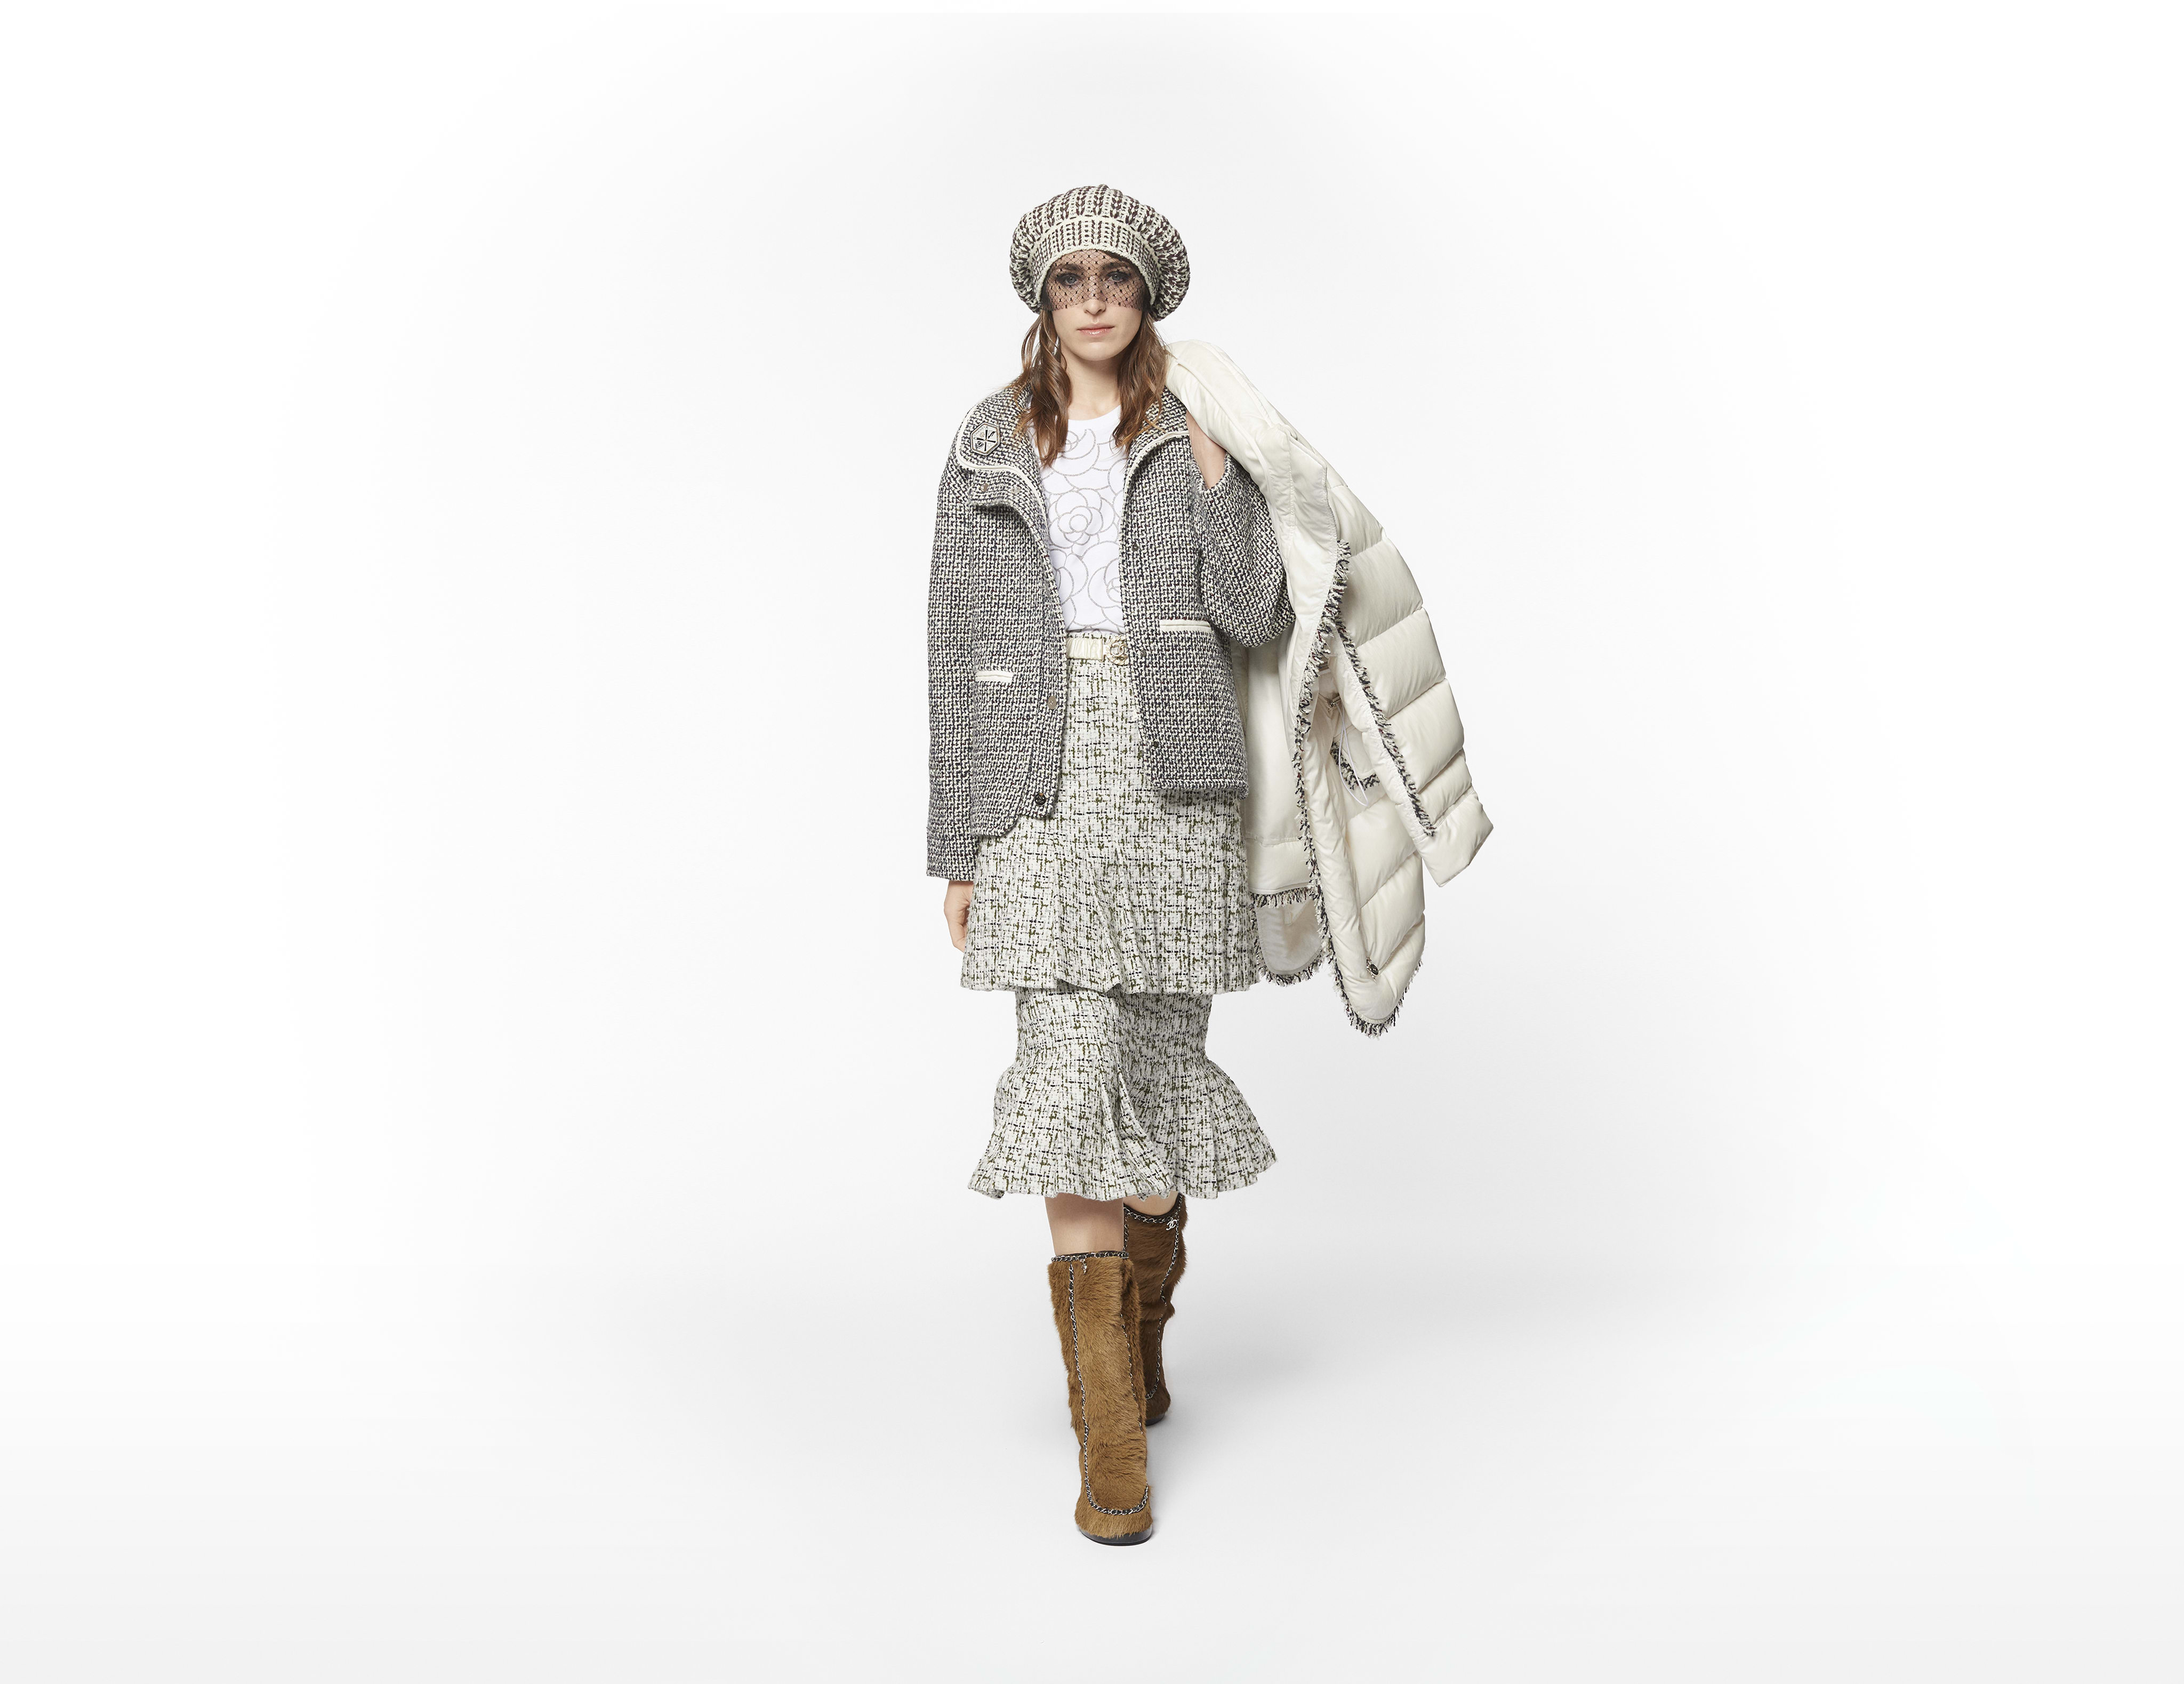 Look 3 - Coco Neige コレクション